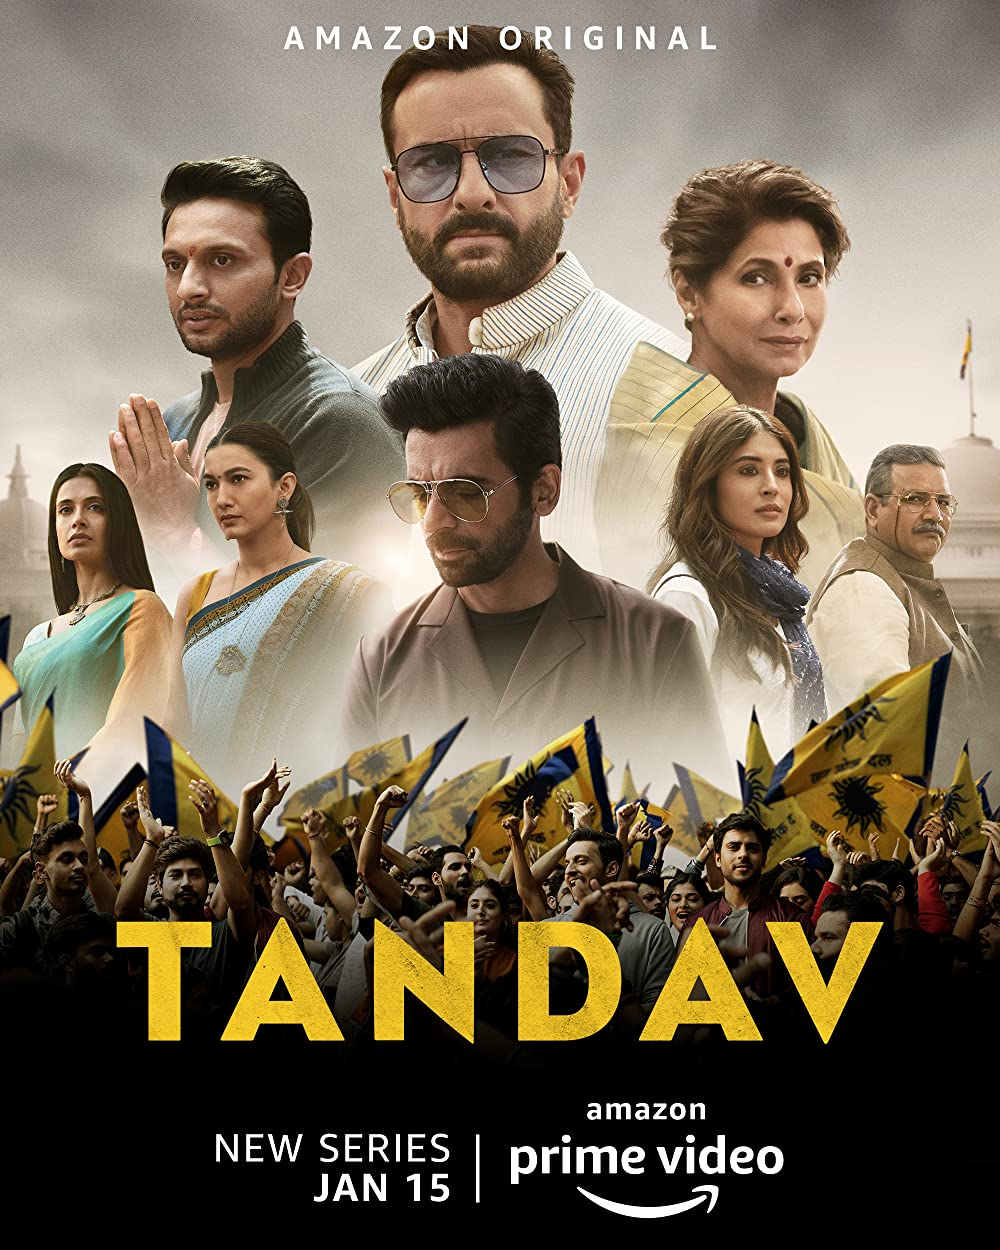 Tandav S01 2021 Hindi Amazon Original Complete Web Series 900MB HDRip Download